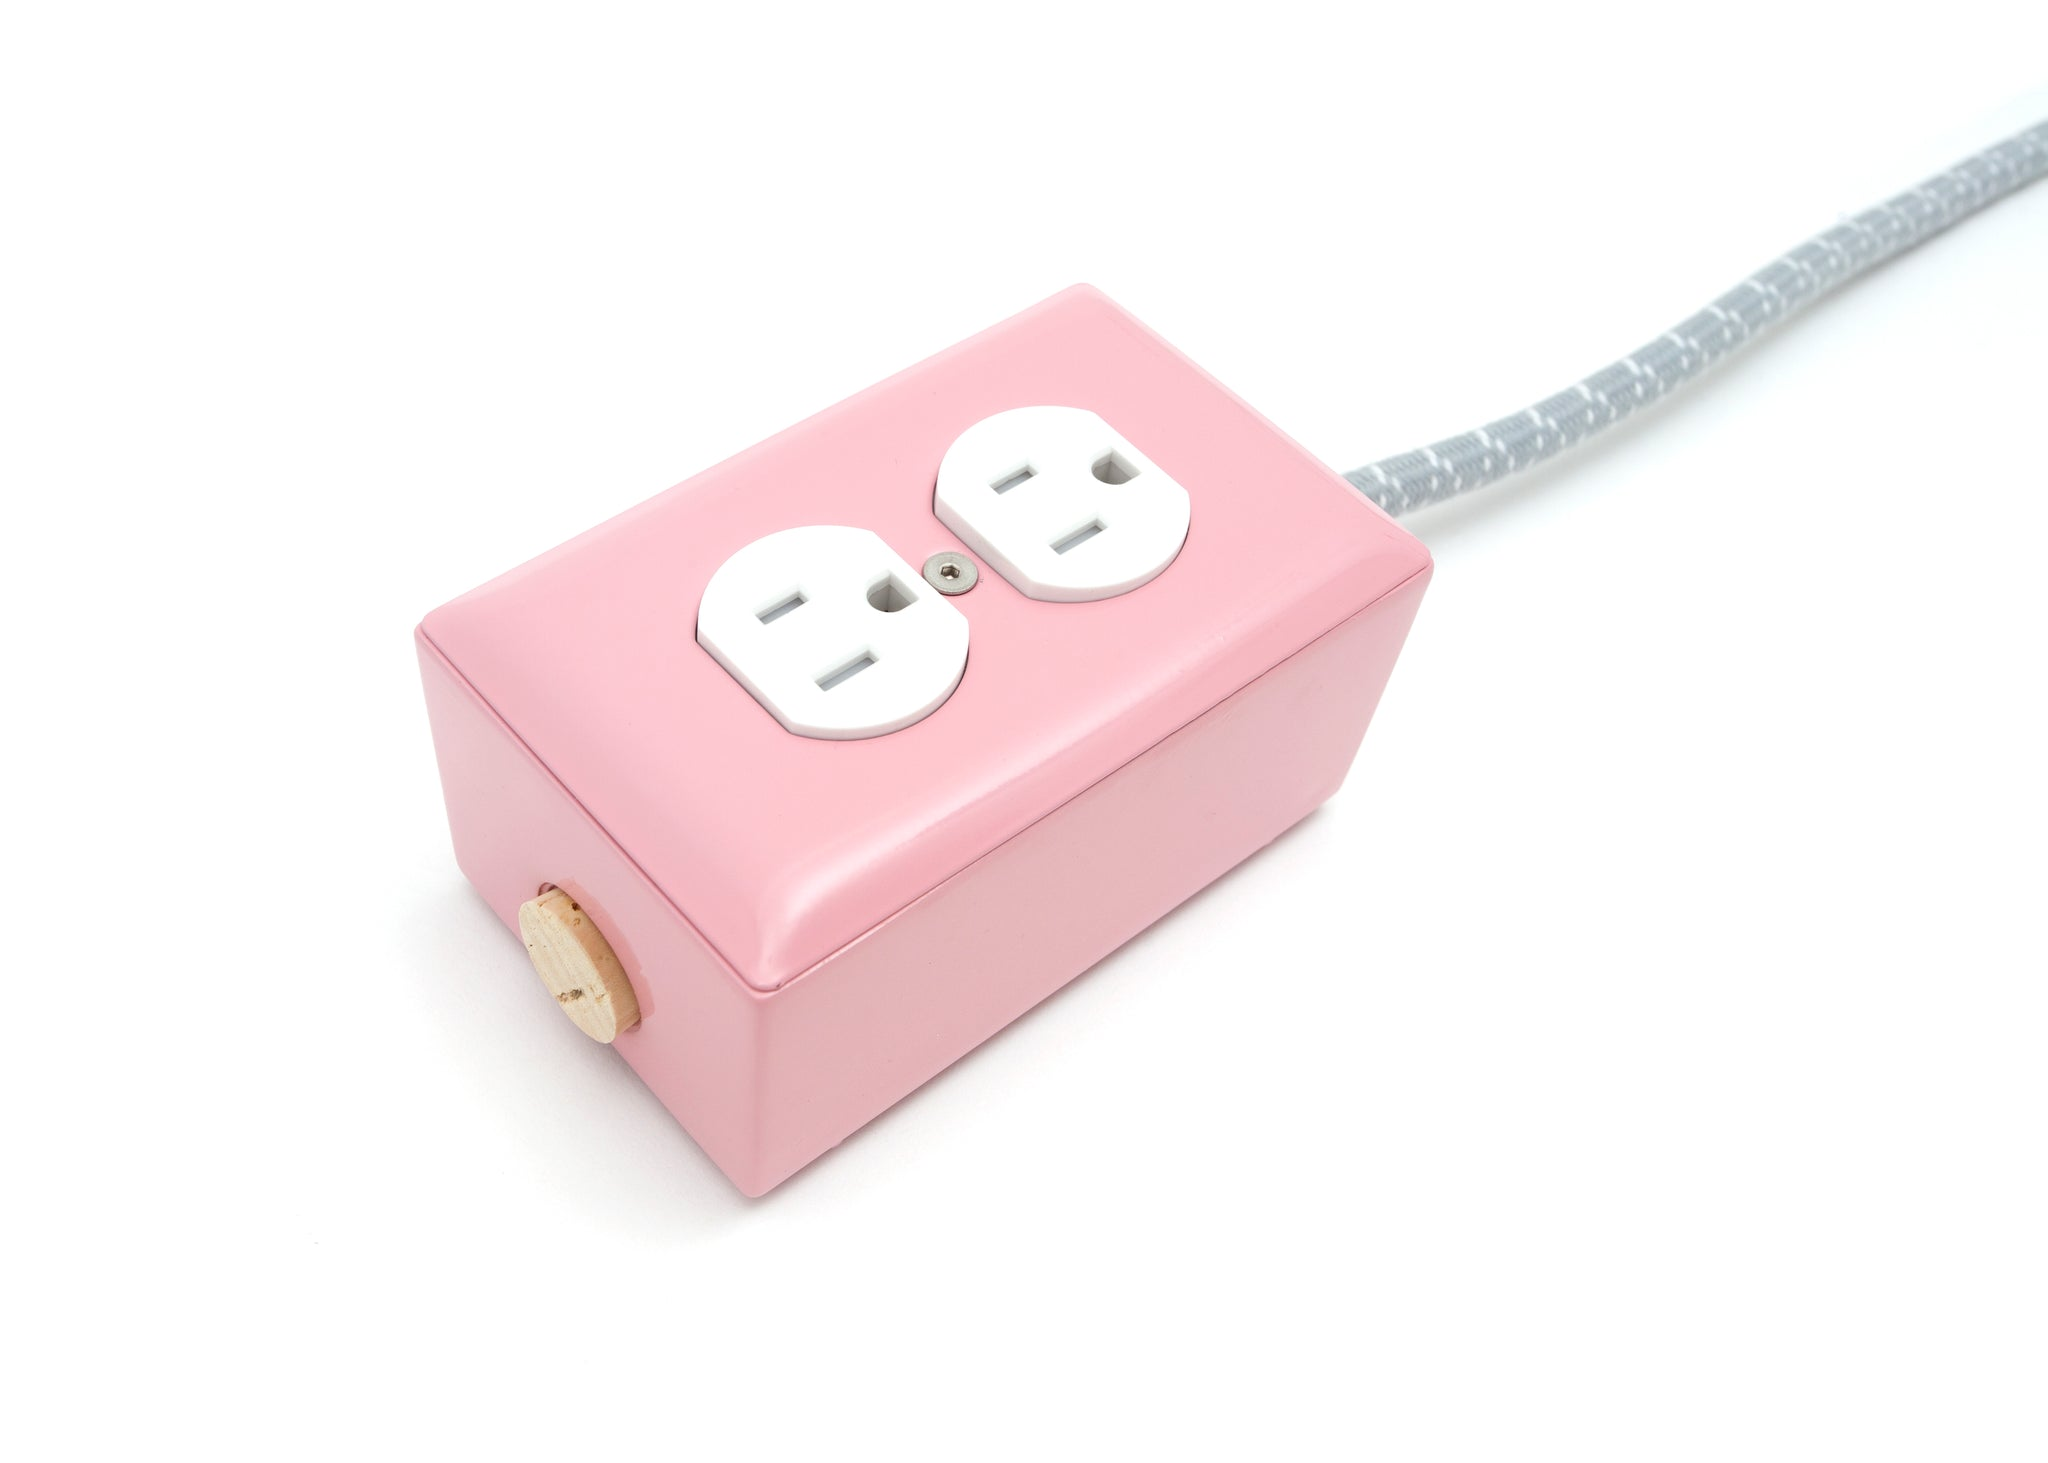 Extō Candy Pink Dual-Outlet Extension Cord for Nordstrom - A Modern Dual-Tamper-Resistant Outlet, 15-AMP Extension Cord